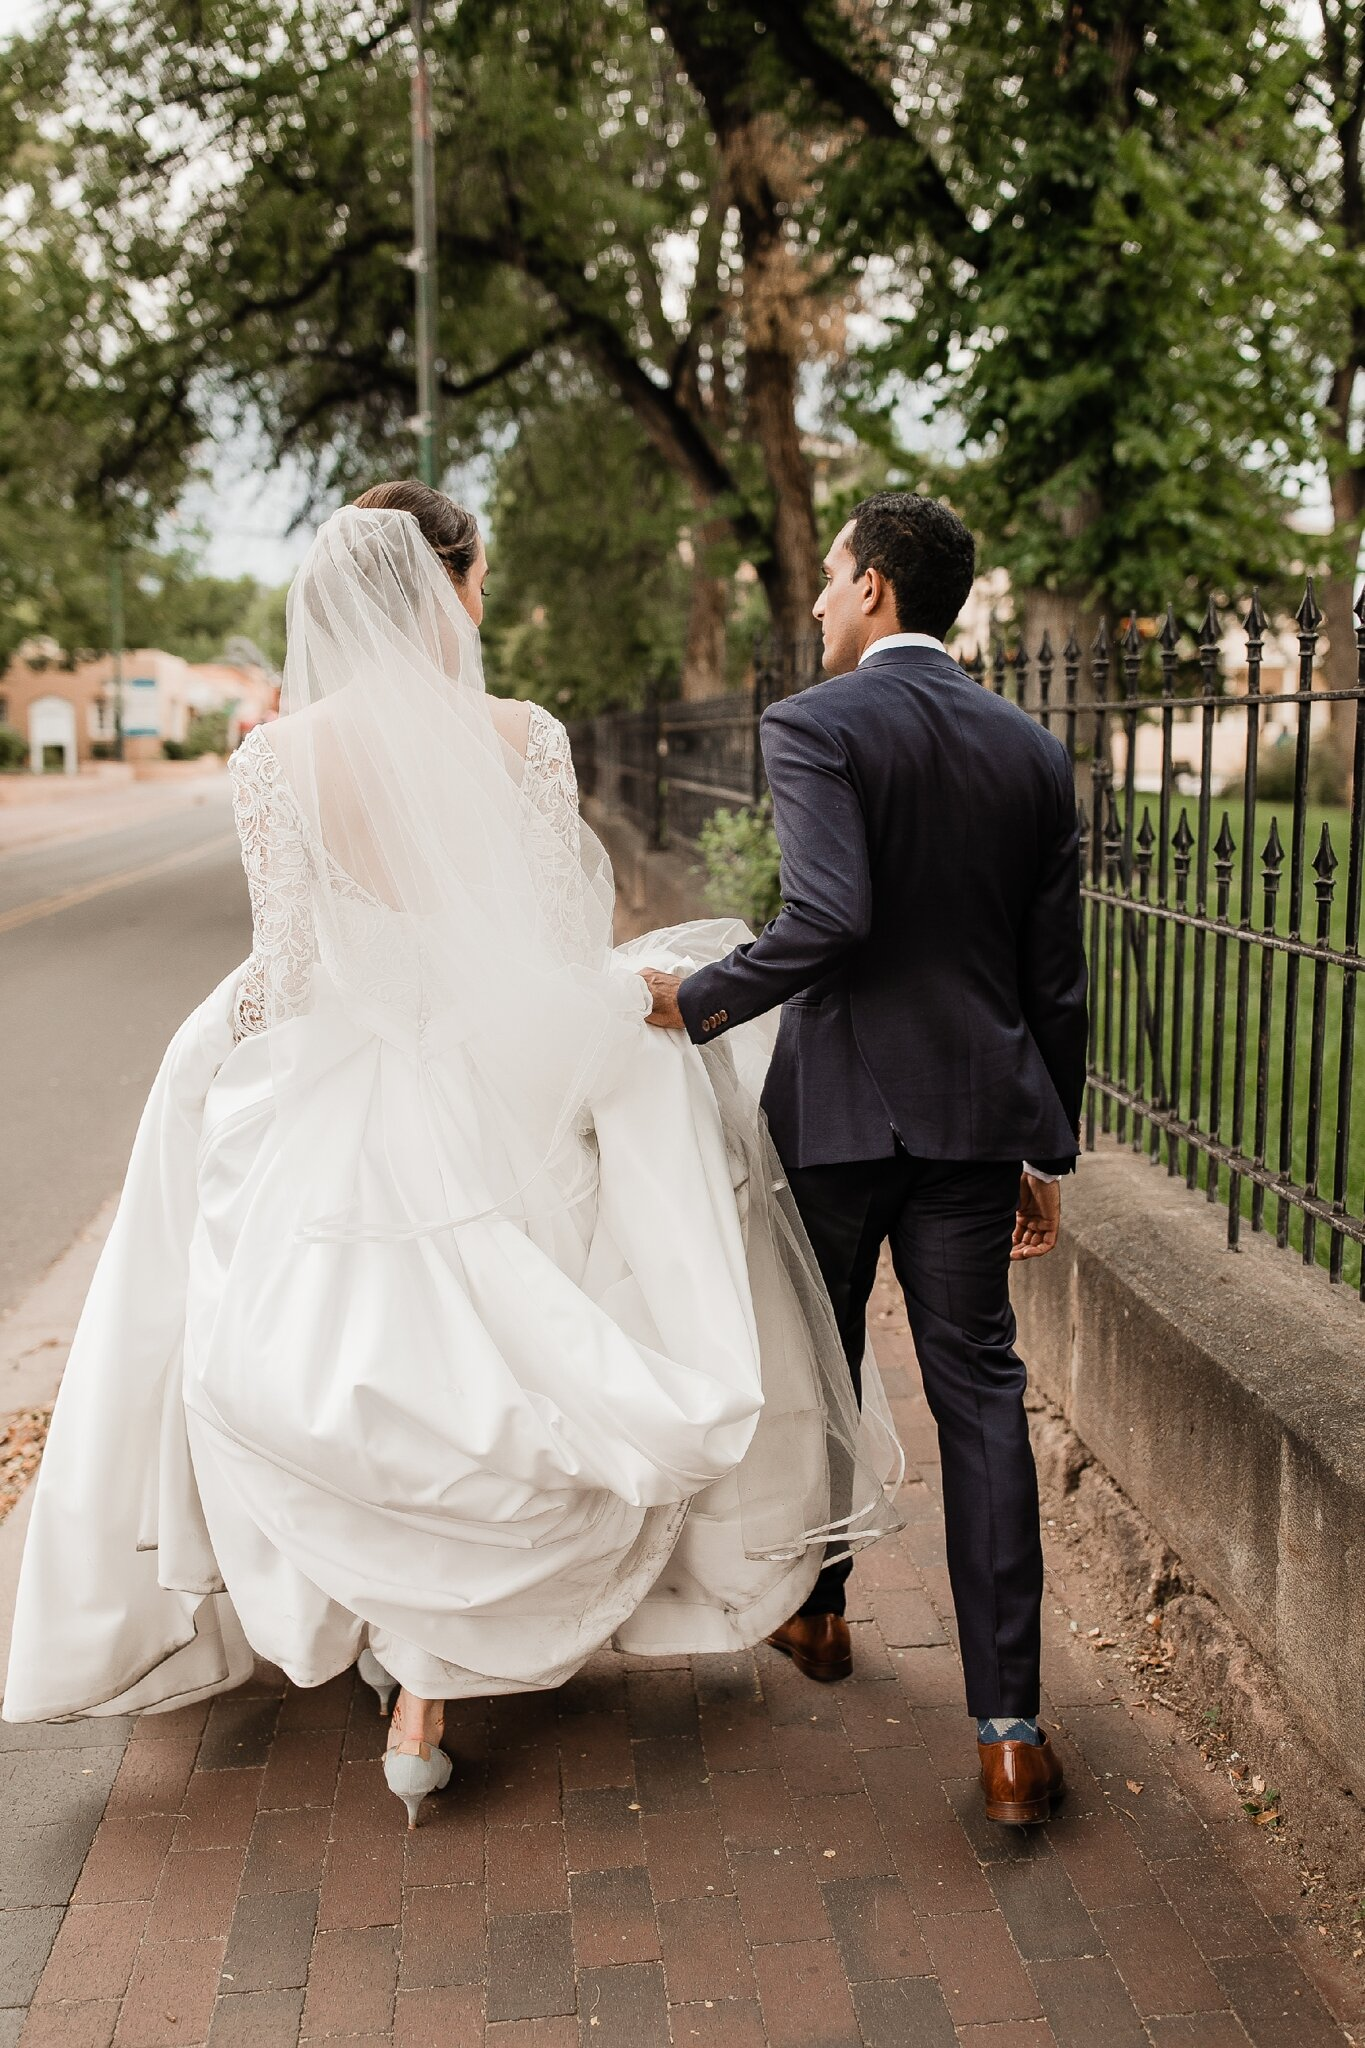 Alicia+lucia+photography+-+albuquerque+wedding+photographer+-+santa+fe+wedding+photography+-+new+mexico+wedding+photographer+-+new+mexico+wedding+-+hindu+wedding+-+catholic+wedding+-+multicultural+wedding+-+santa+fe+wedding_0085.jpg